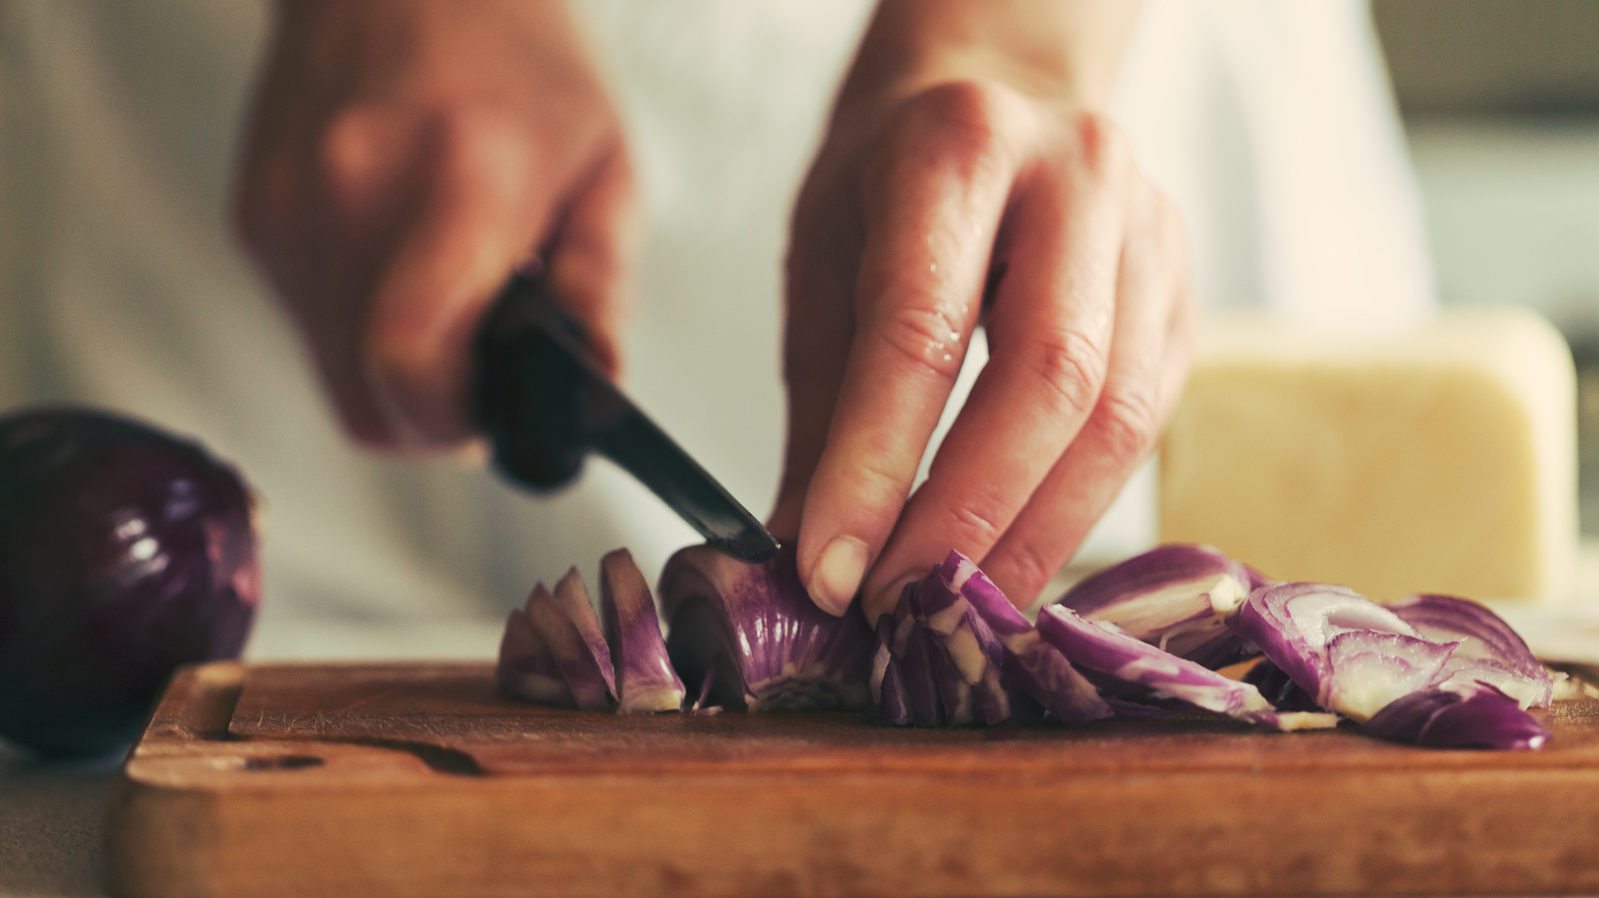 woman slicing red onion